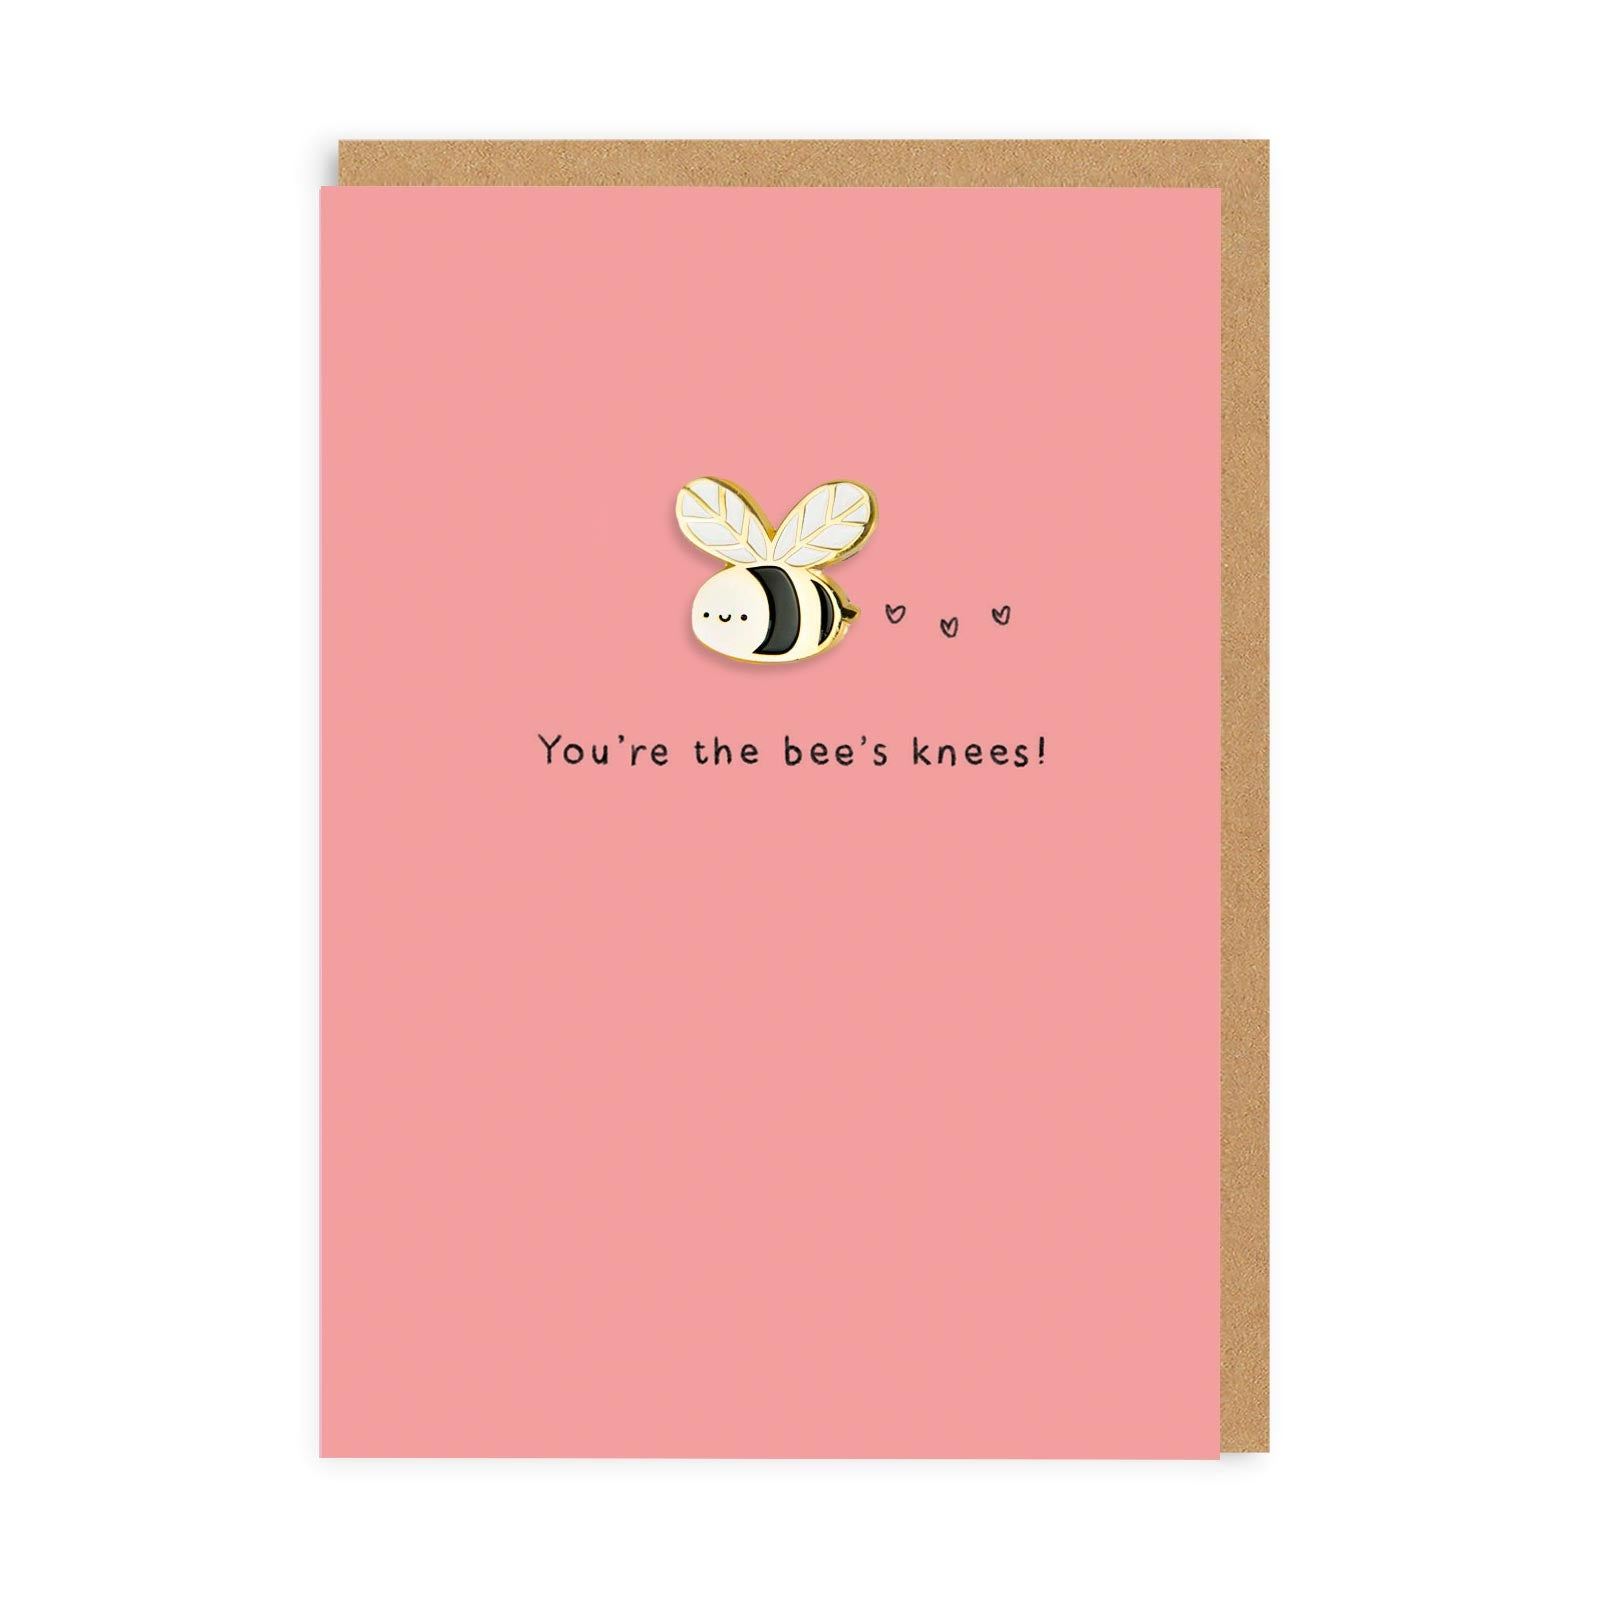 Bees Knees Enamel Pin Greeting Card